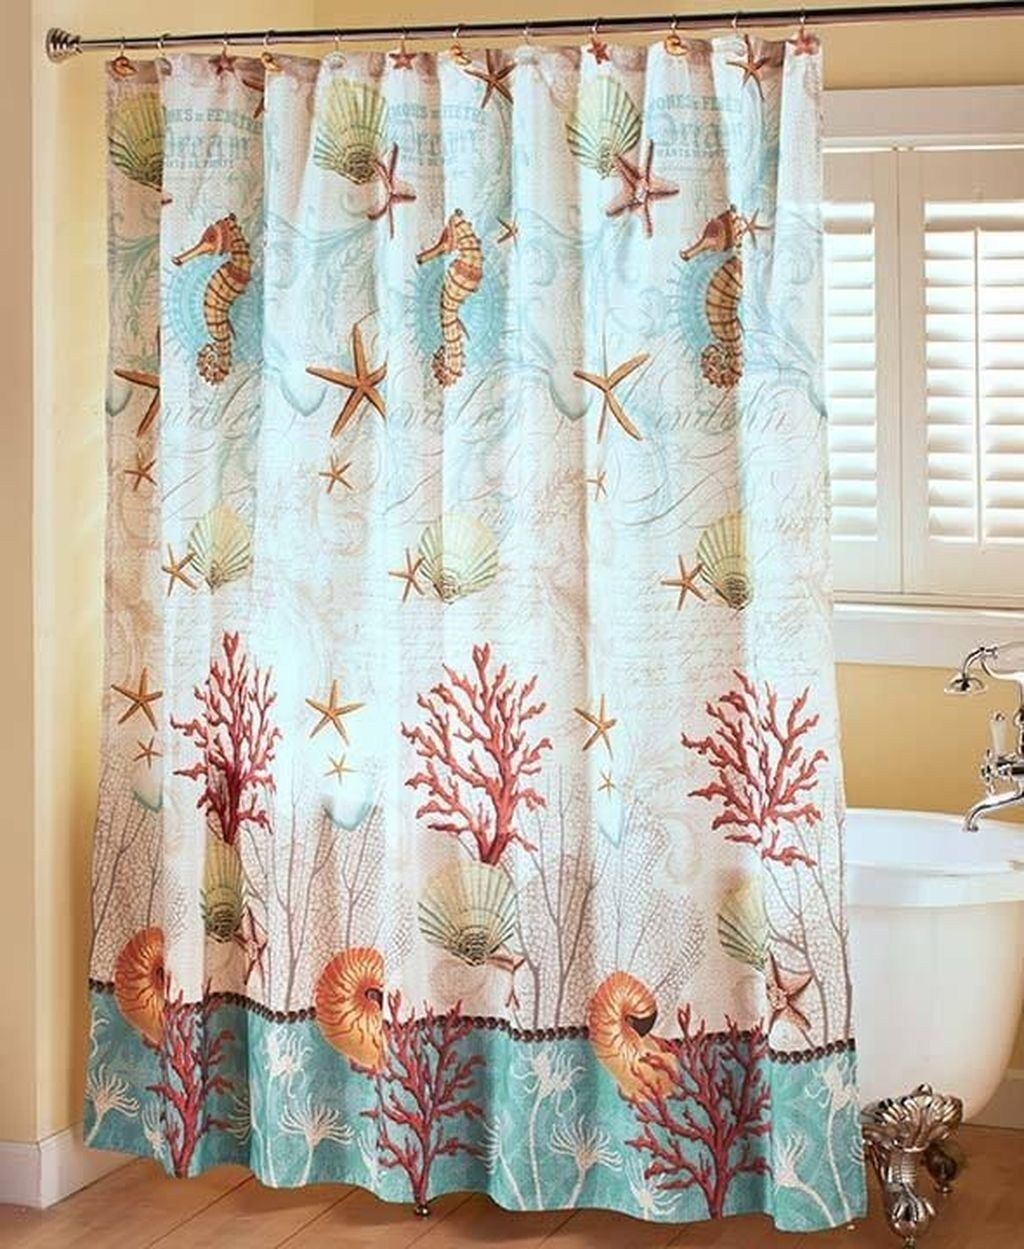 The Ocean Themed Bathroom Is Quite Awesome Nautical Bathroom Decor Beach Bathroom Decor Beach Theme Bathroom